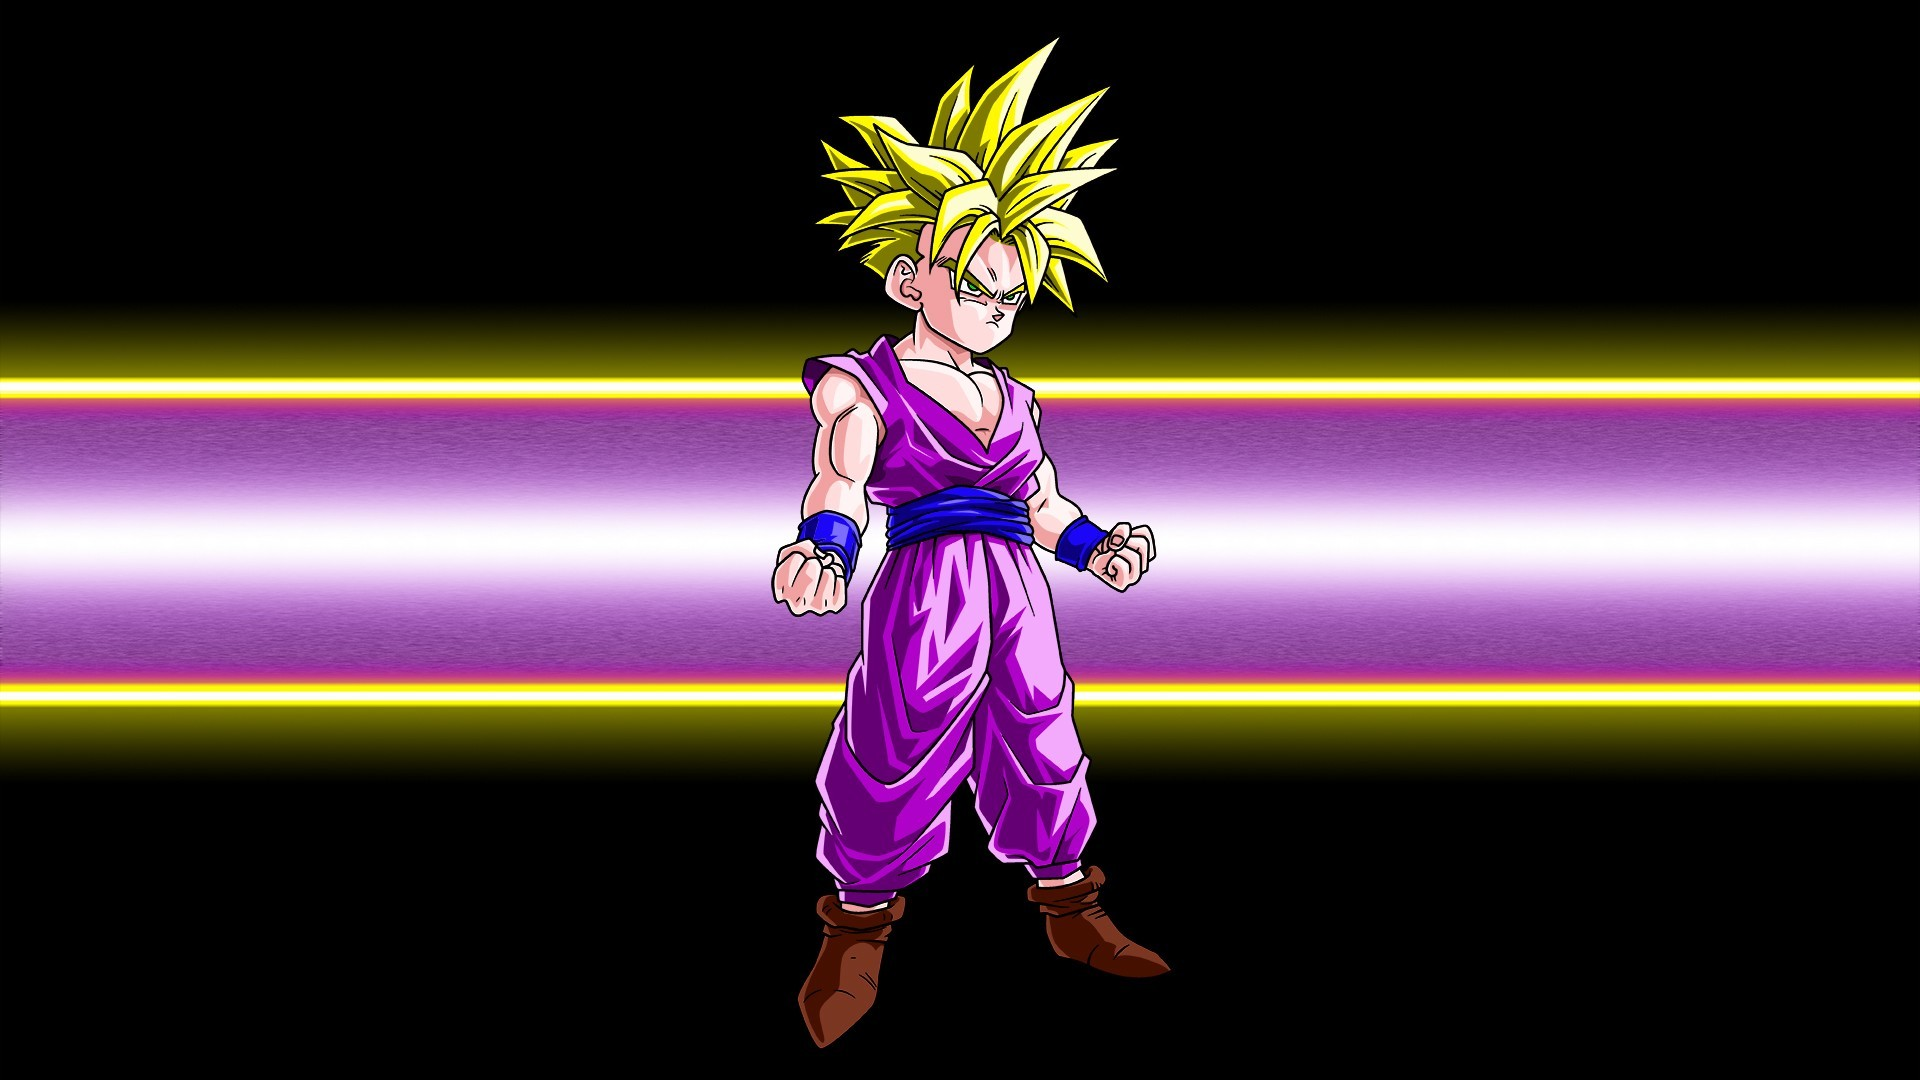 Super saiyan 2 gohan wallpapers